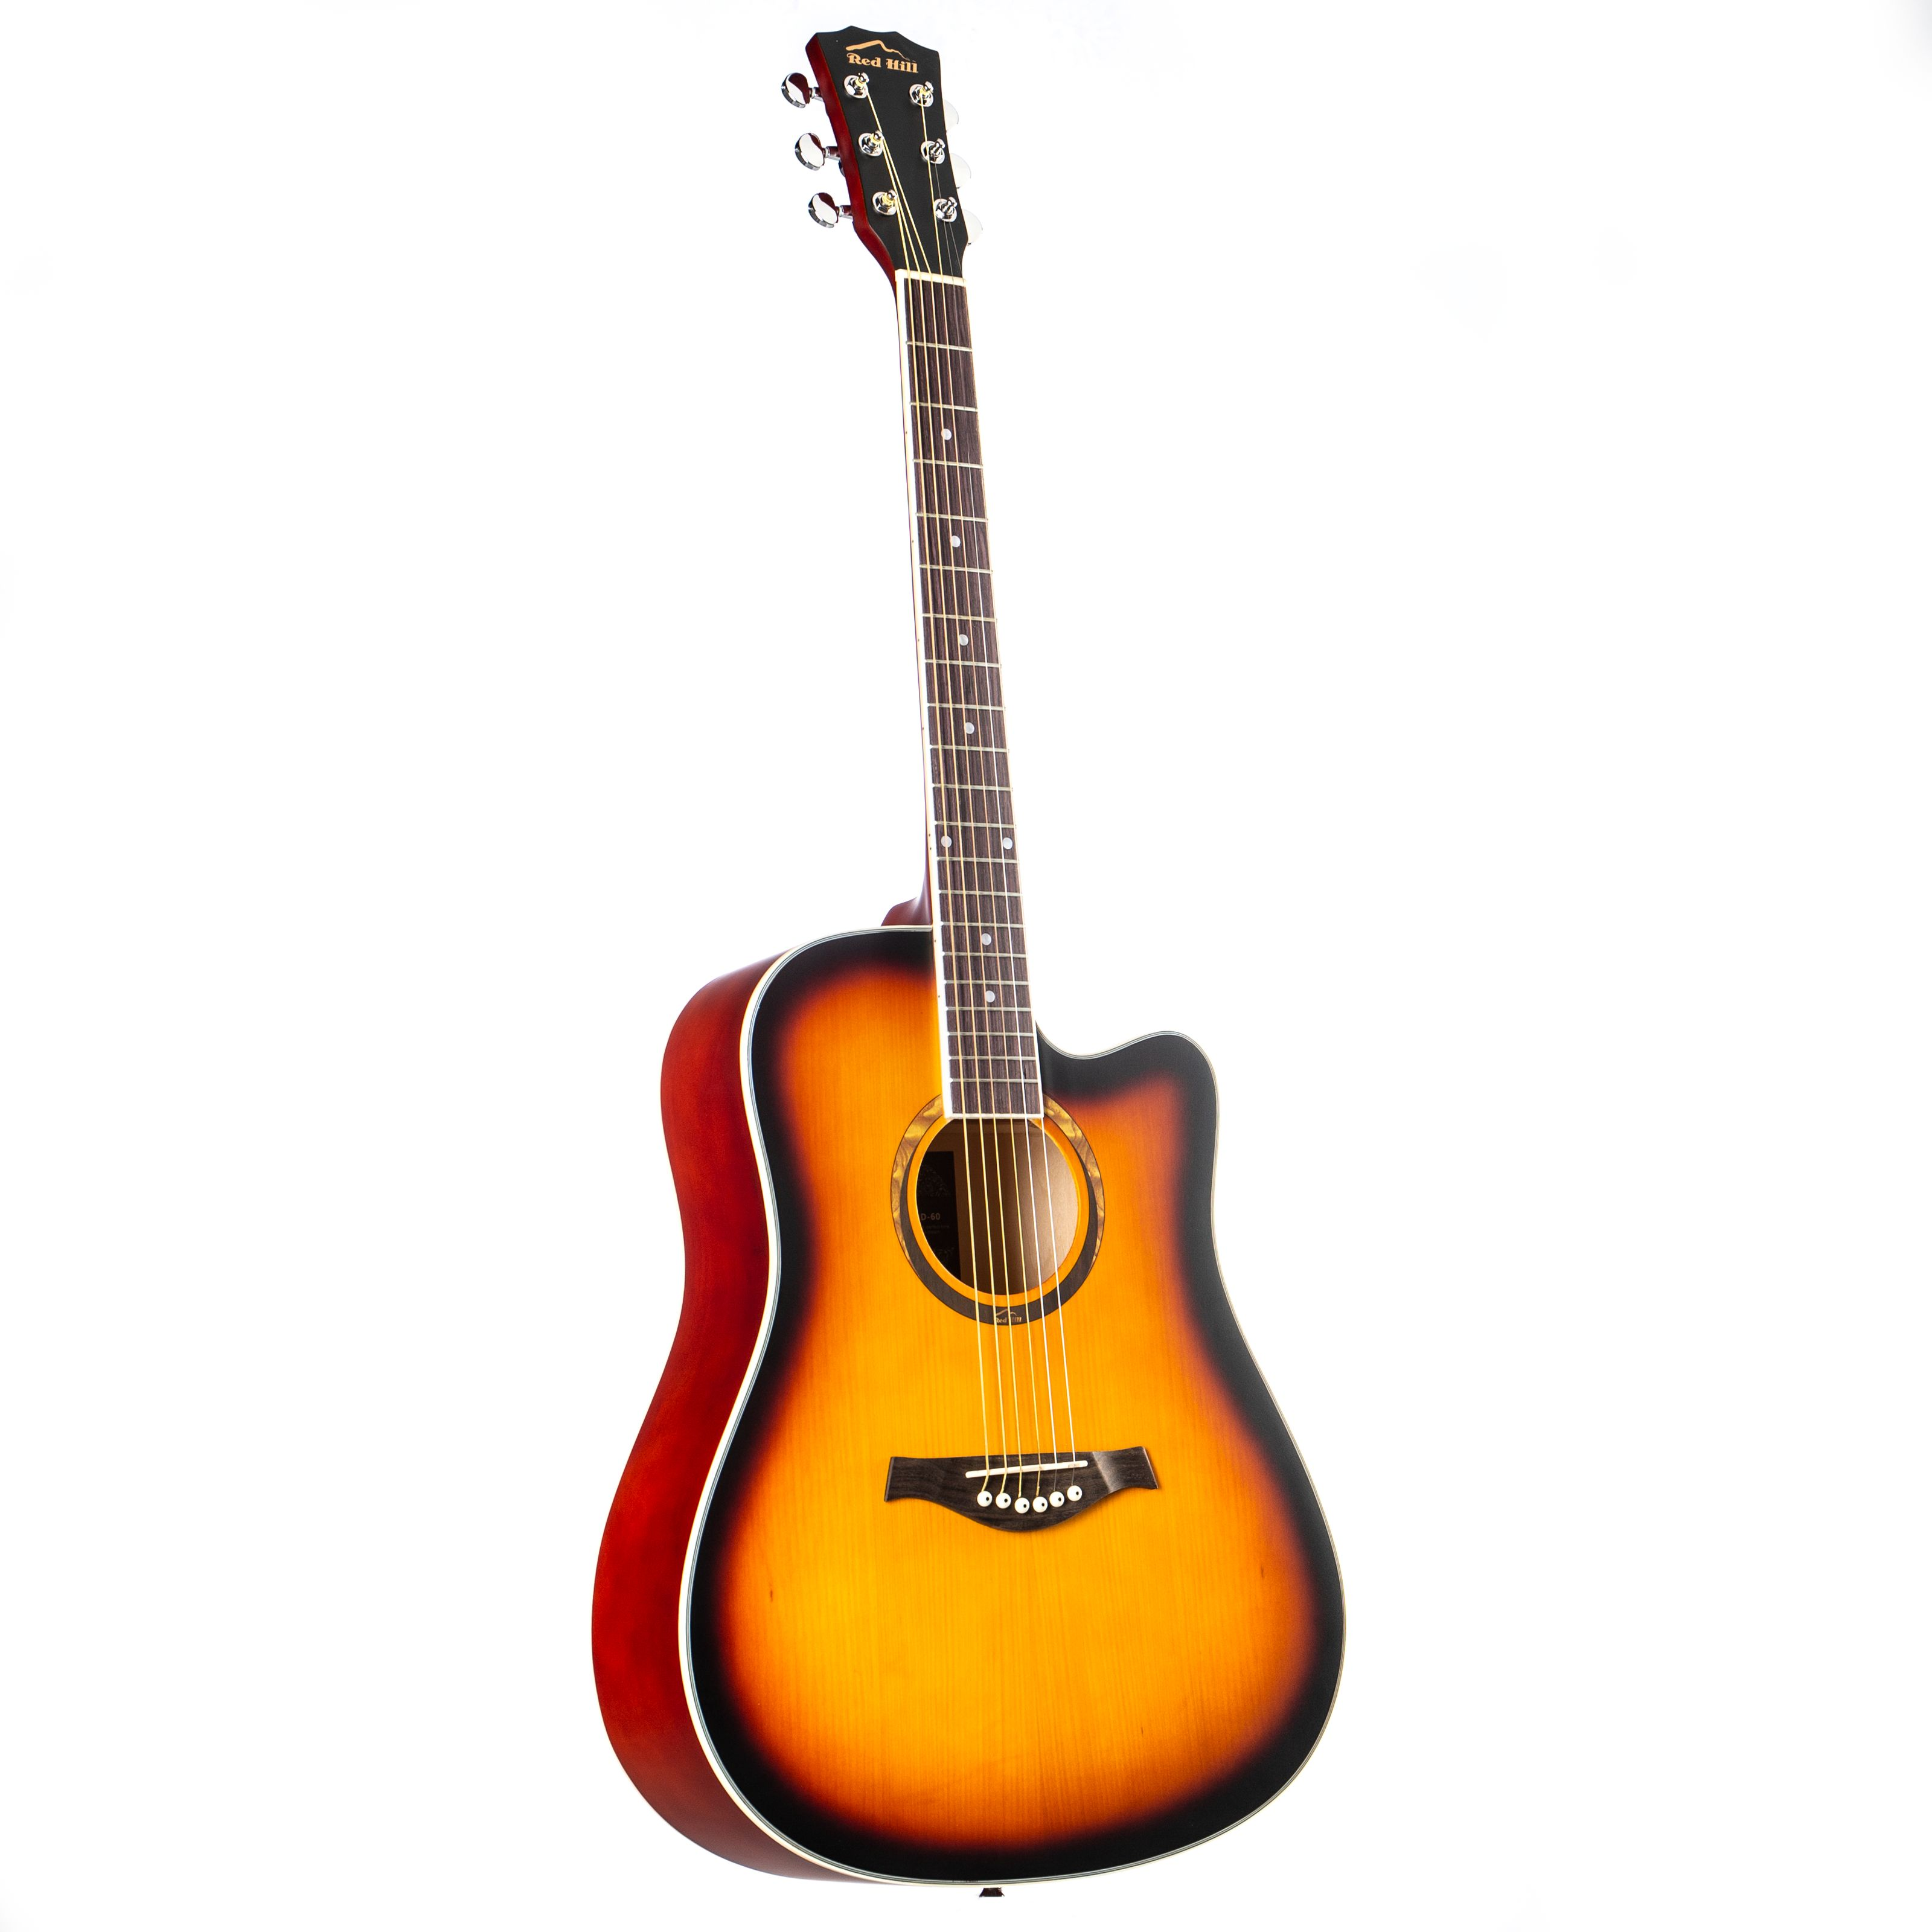 Red Hill - D-60 Sunburst E41-YD sunburst